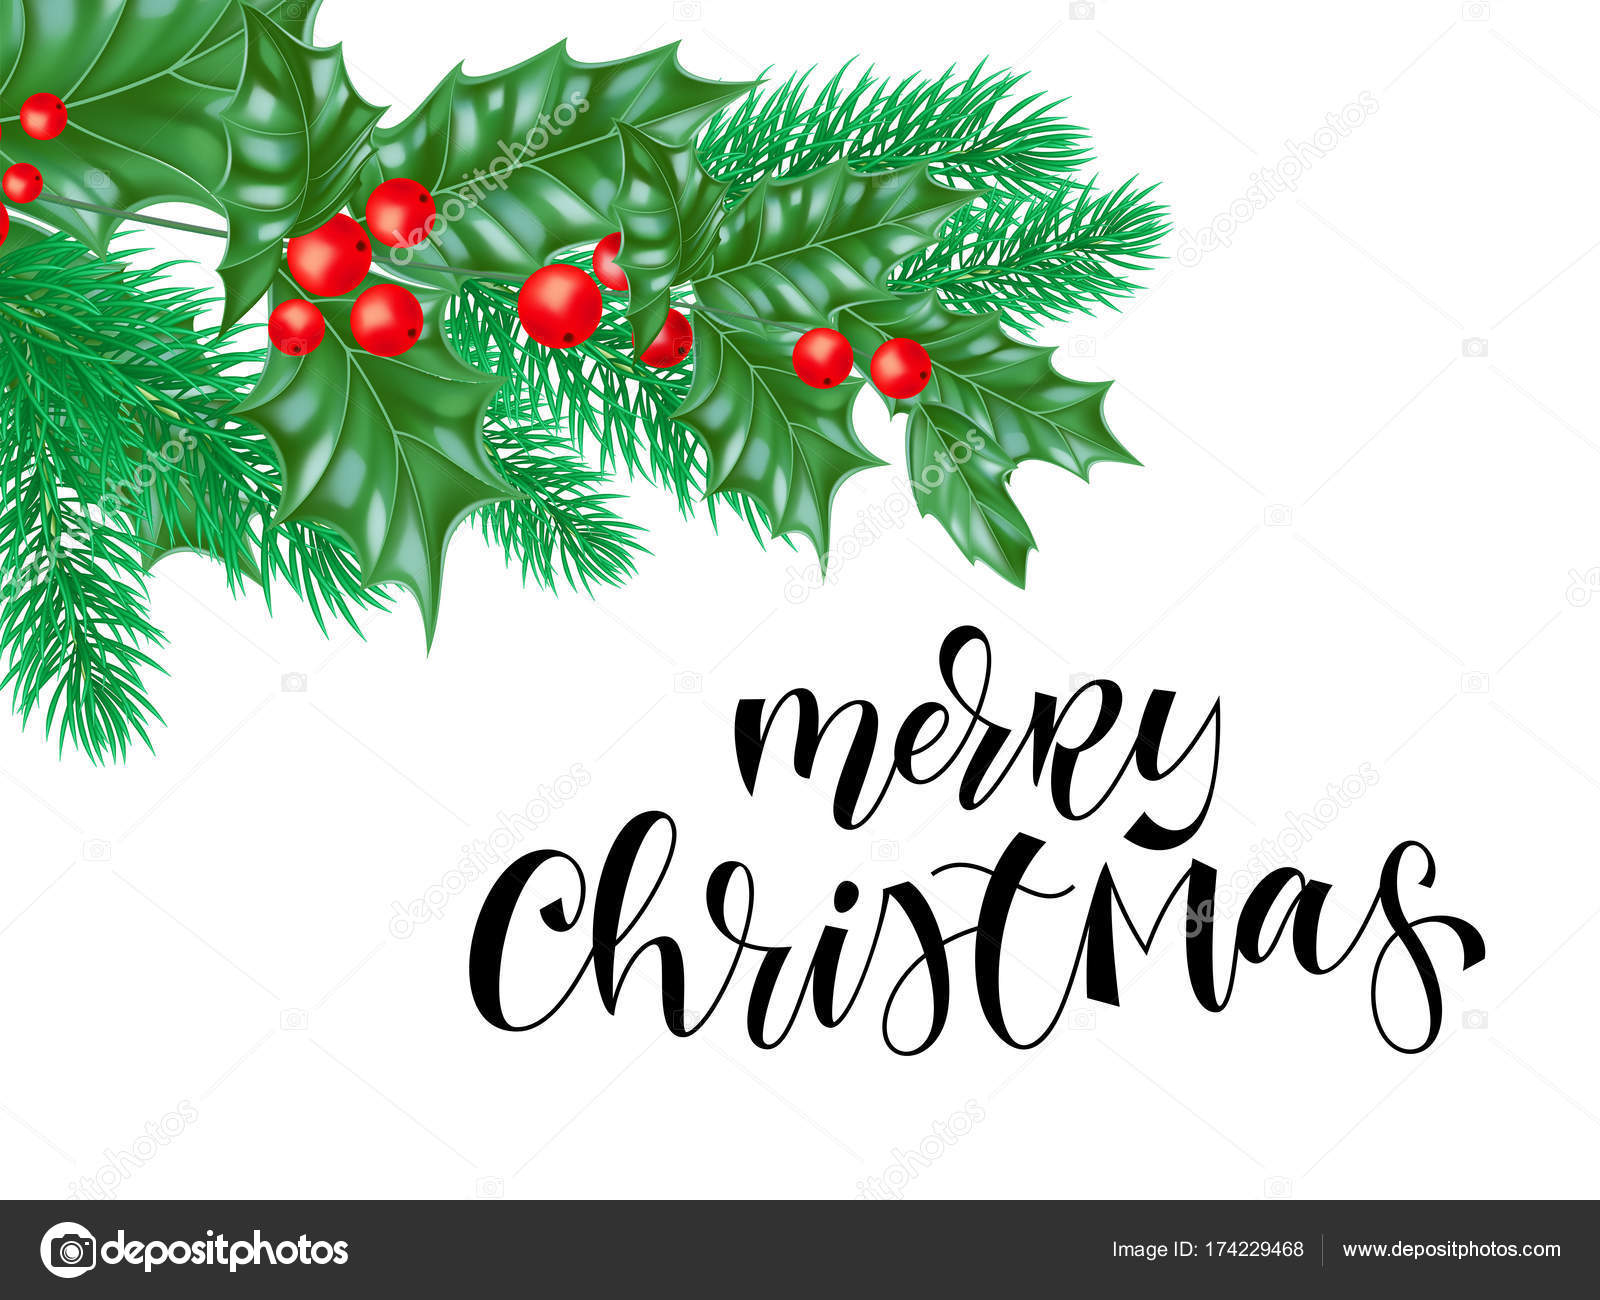 Christmas Greetings Background.Merry Christmas Greeting Card Background Design Template Of